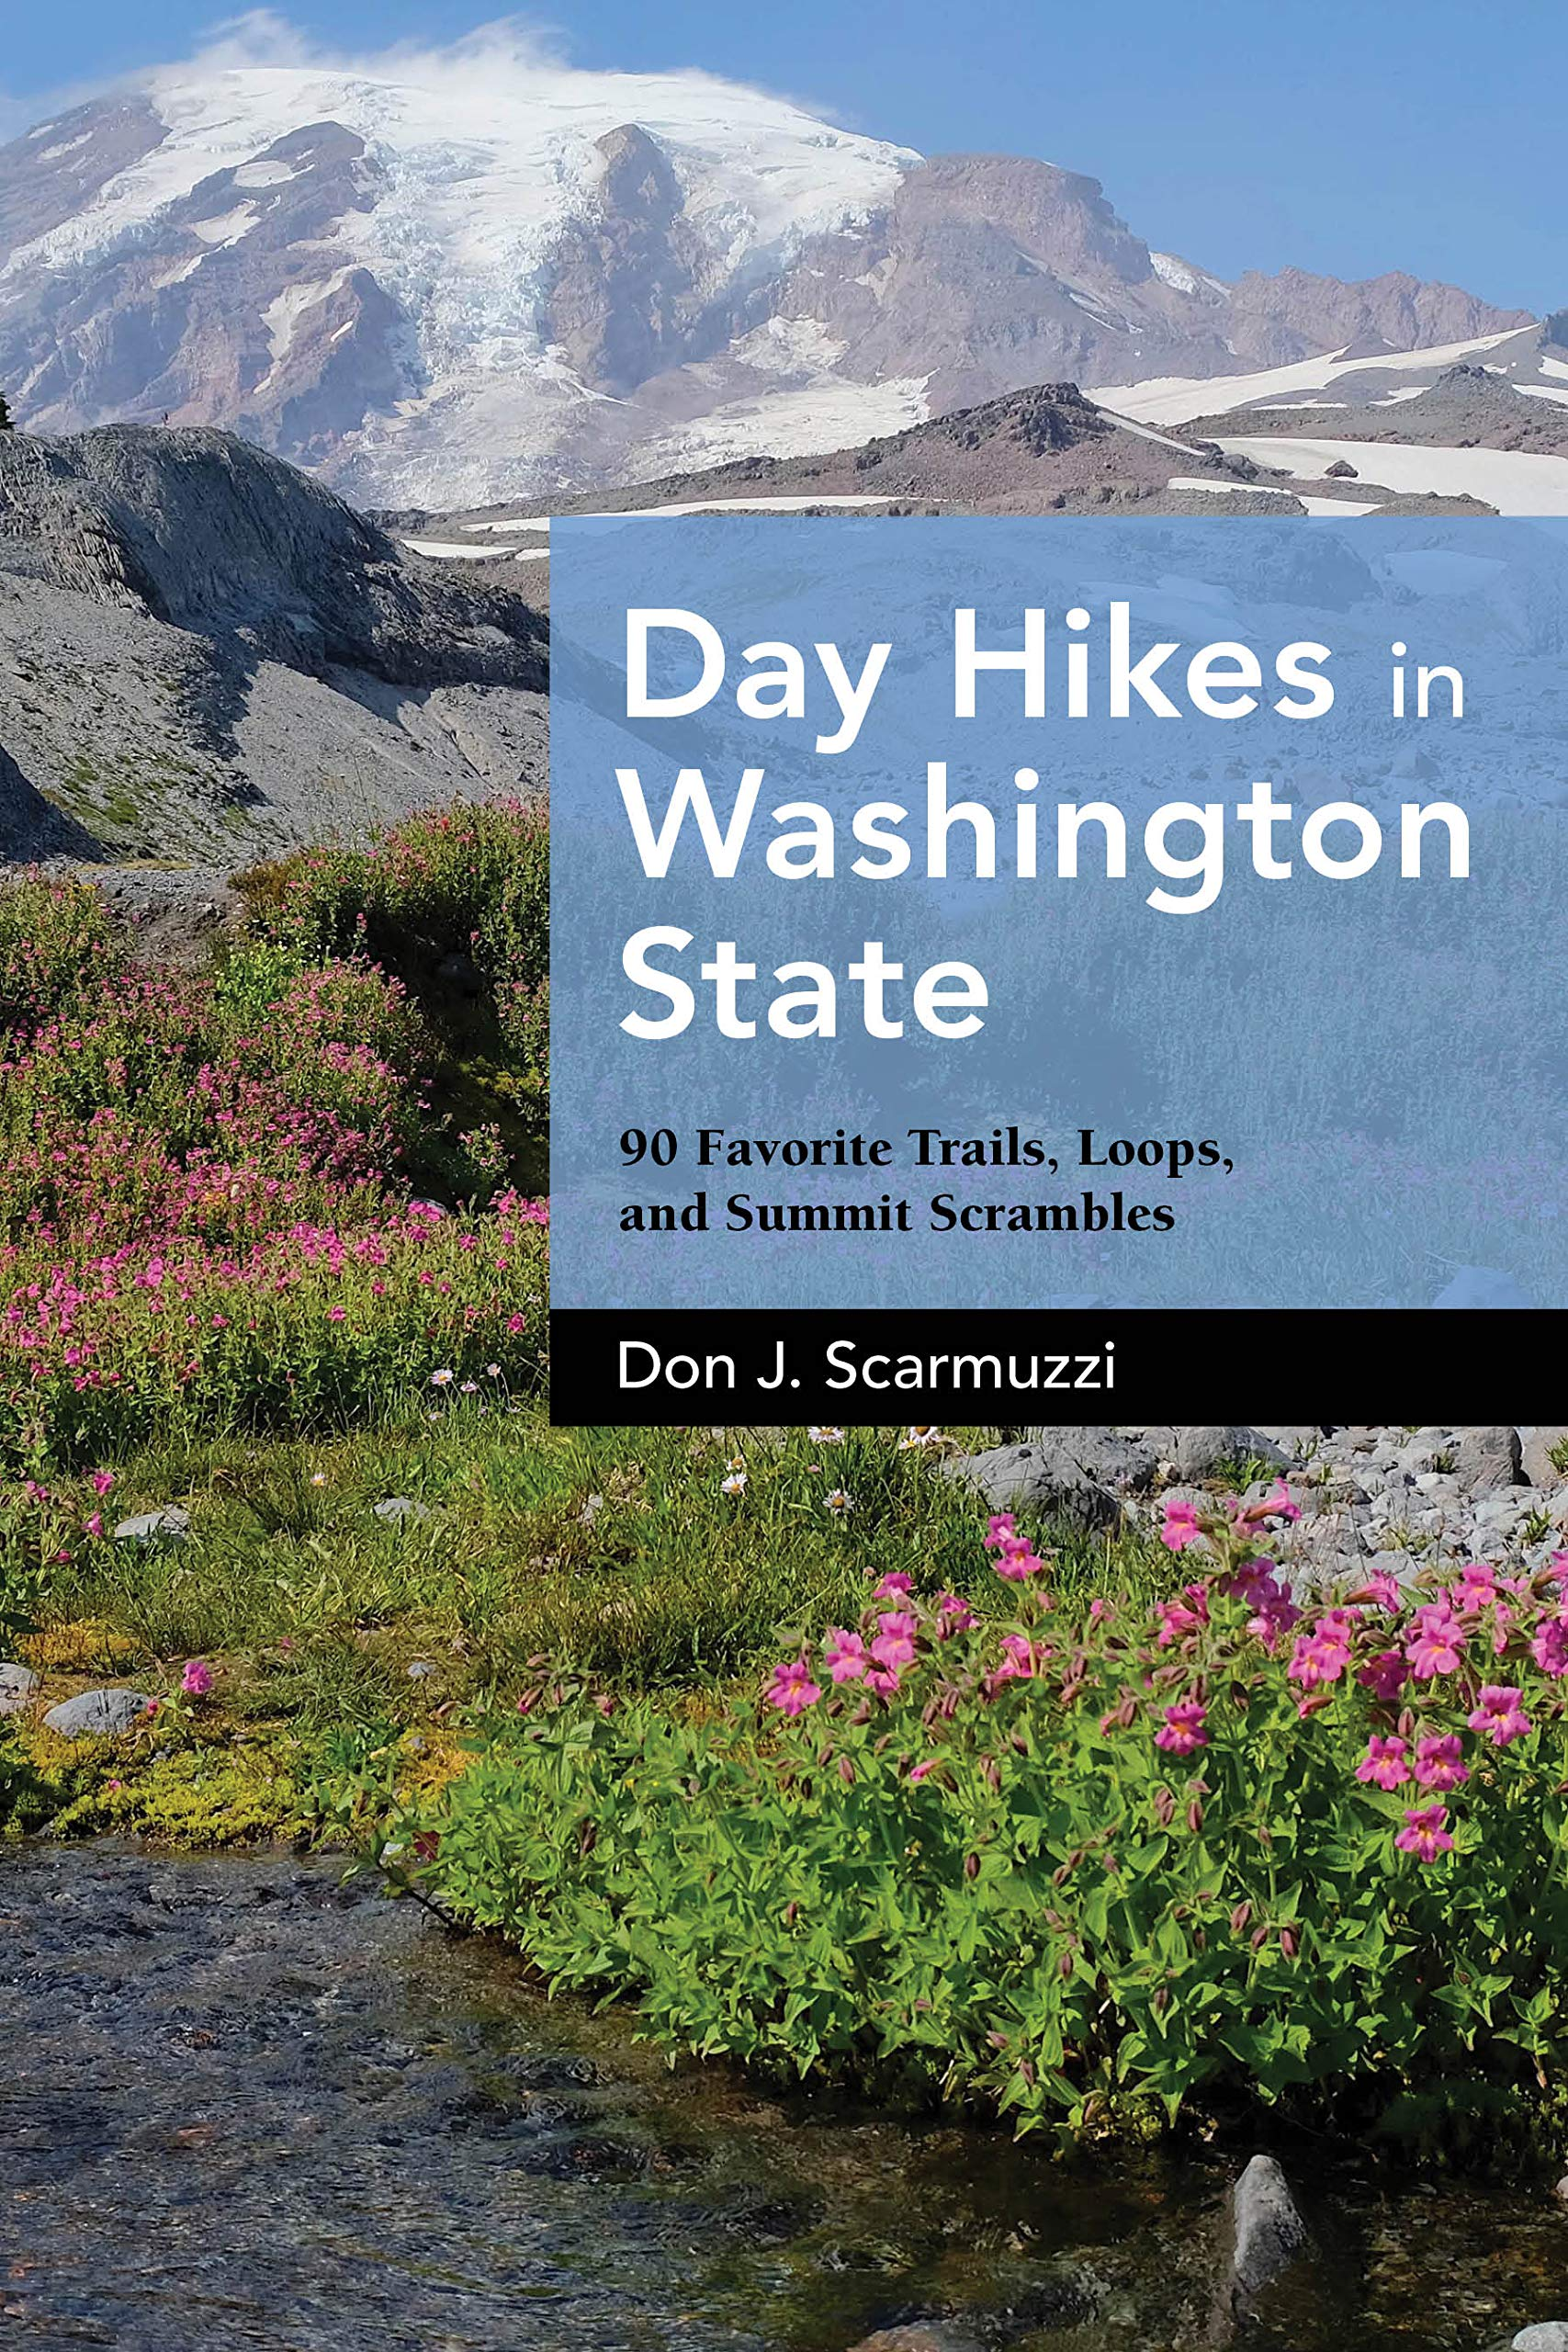 Day Hikes in Washington State: 90 Favorite Trails, Loops, and Summit Scrambles